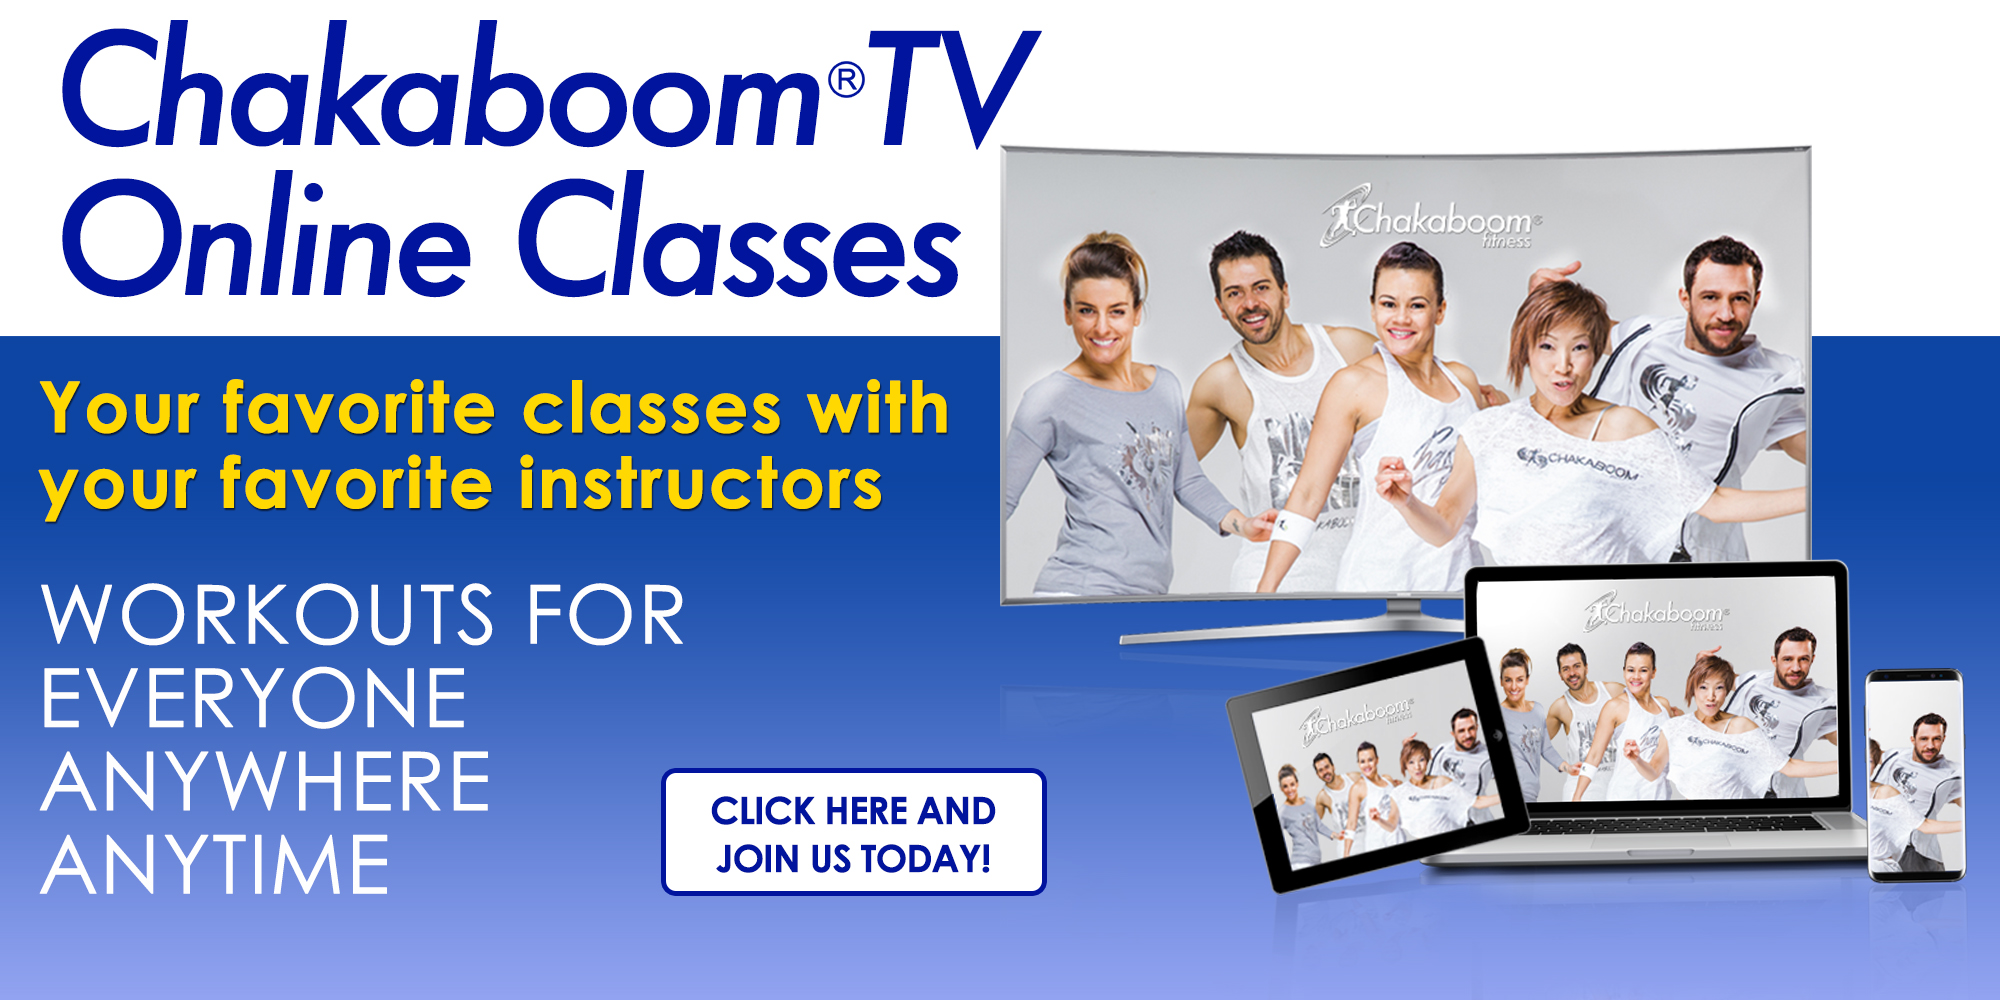 Chakaboom TV Online Classes